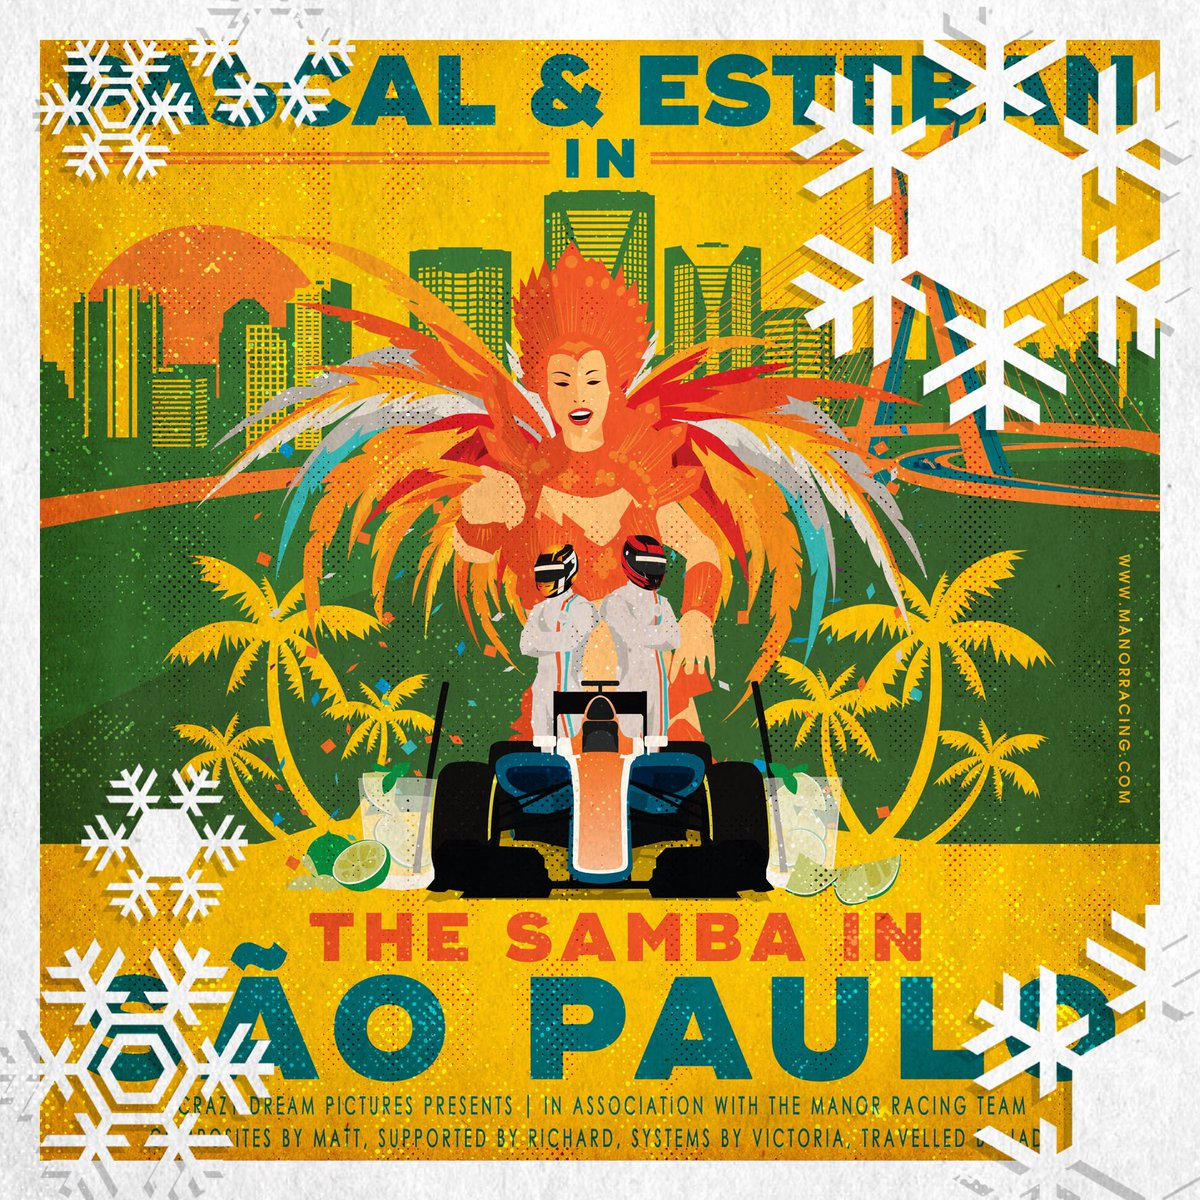 Penultimate day of Race Posters Revisited. Next up, hmmm...#BrazilGP. As it turned out, we did not feel like doing the Samba in São Paulo 💔 https://t.co/weku1B27RC